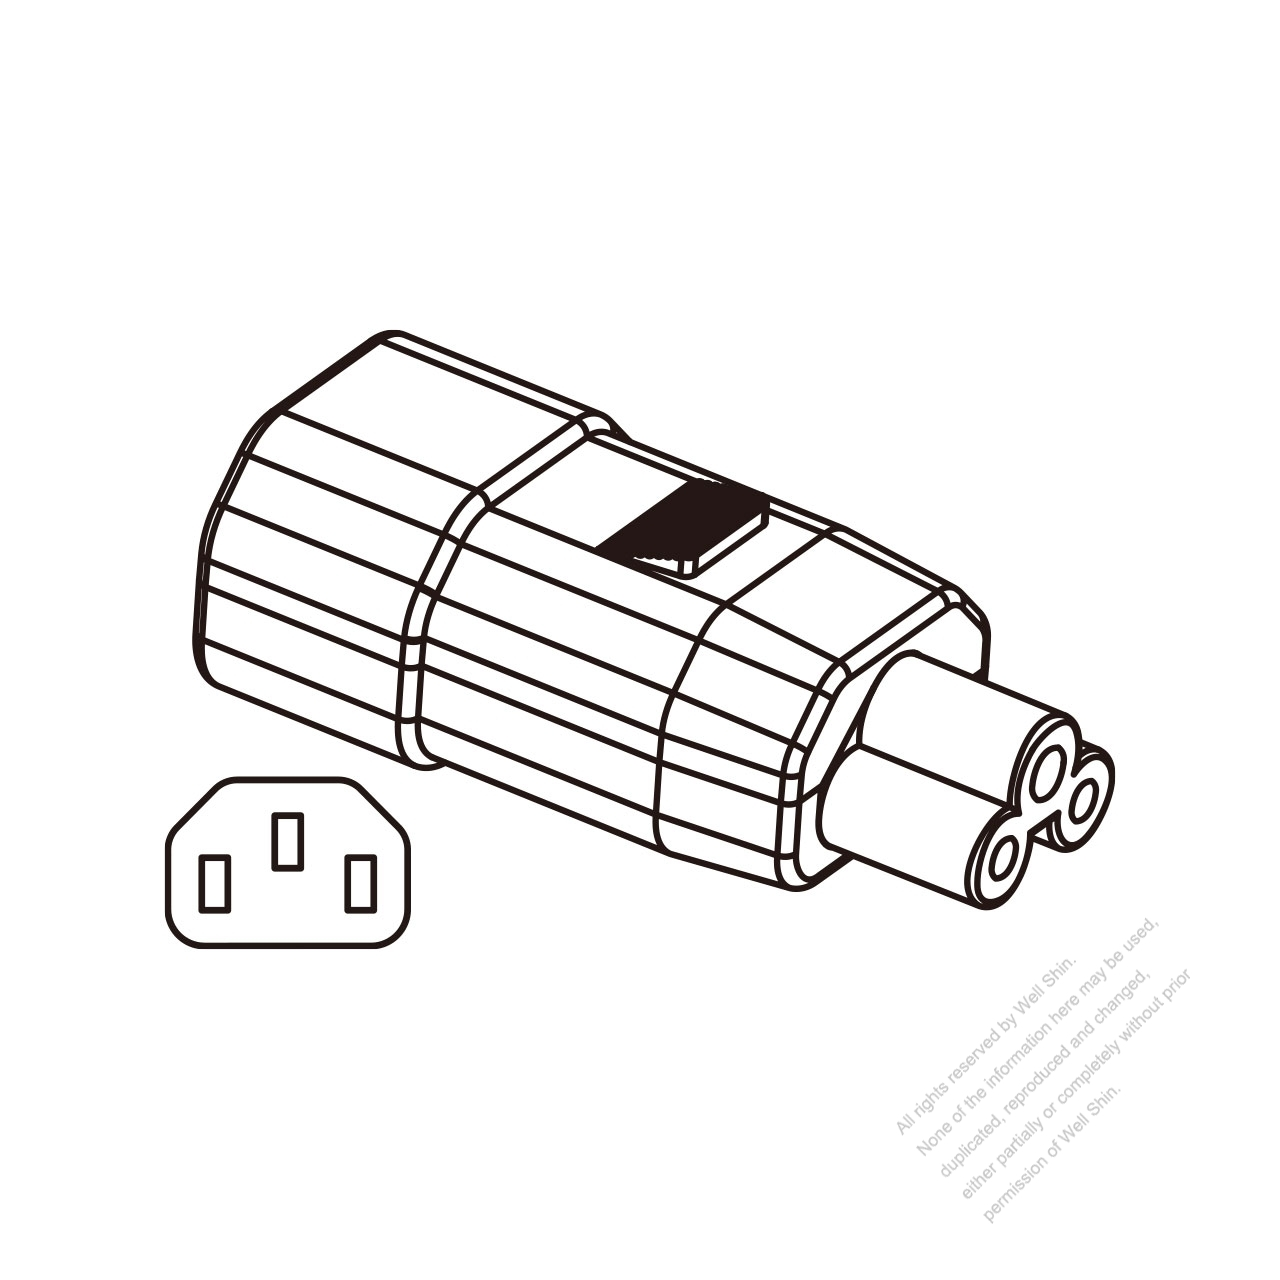 Adapter Plug, IEC 320 Sheet E Inlet to C5 Female Connector